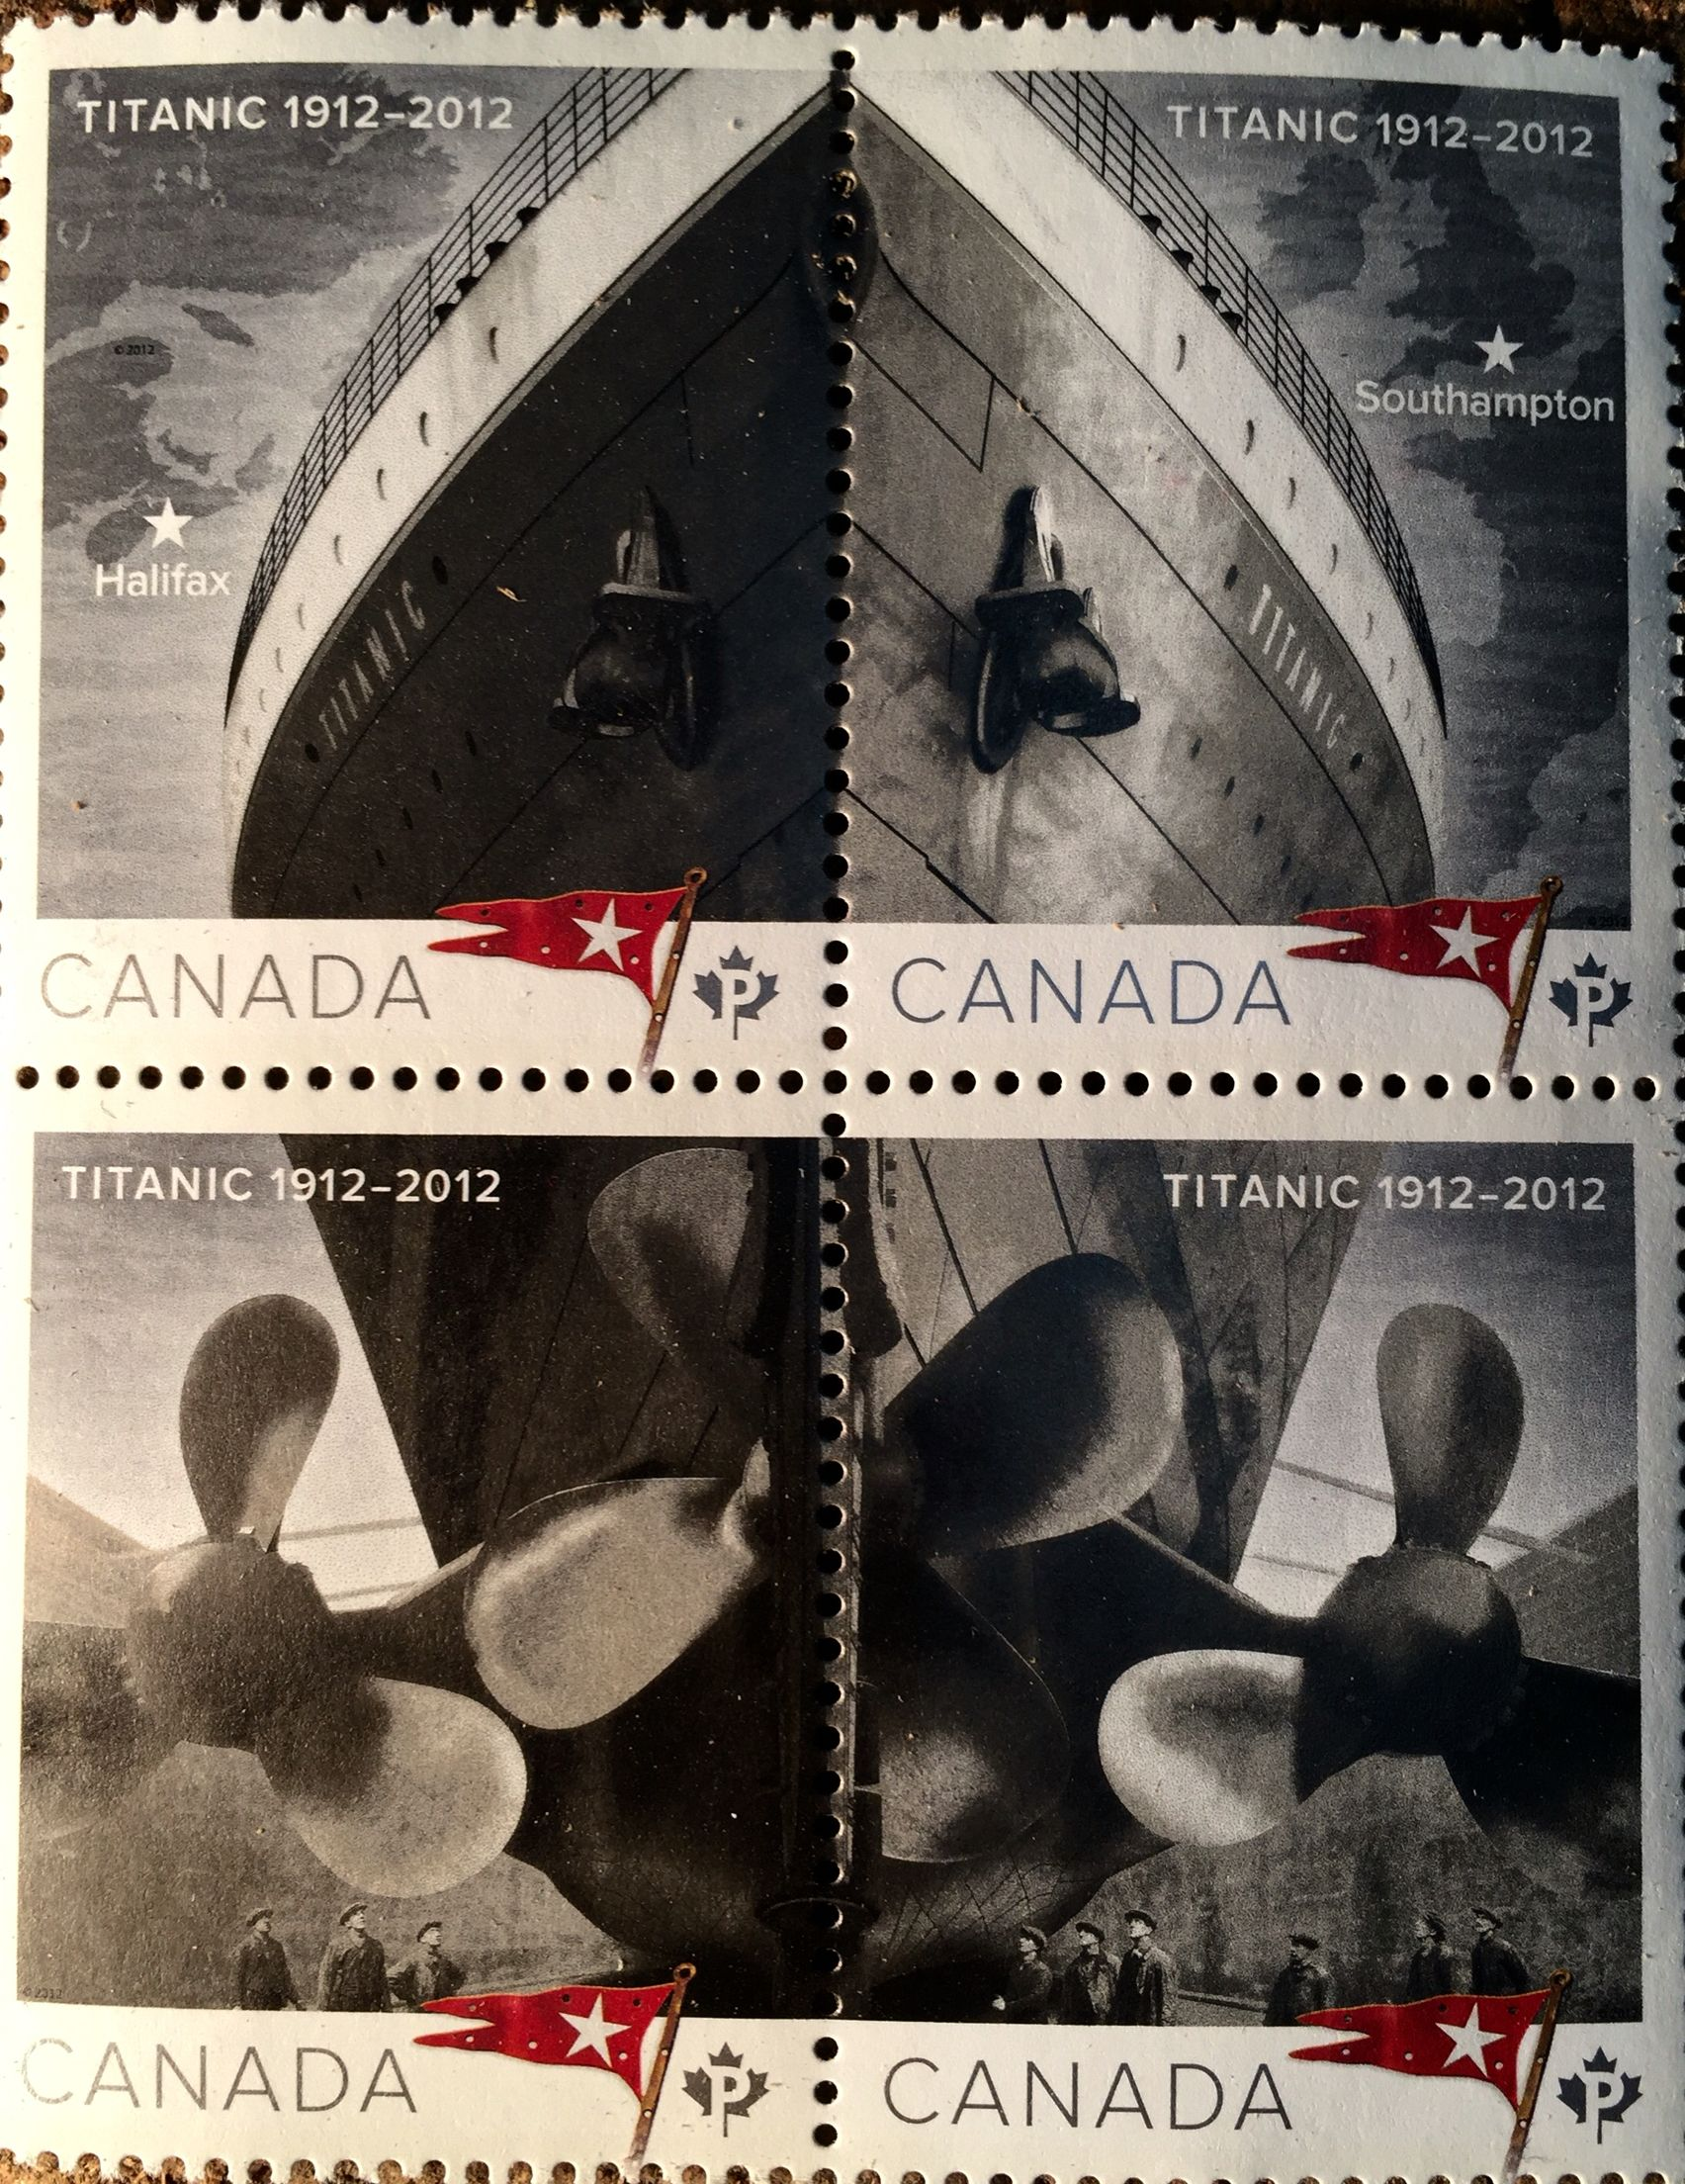 Canadian Titanic postage stamp commorating 100 years since the 1912 sinking